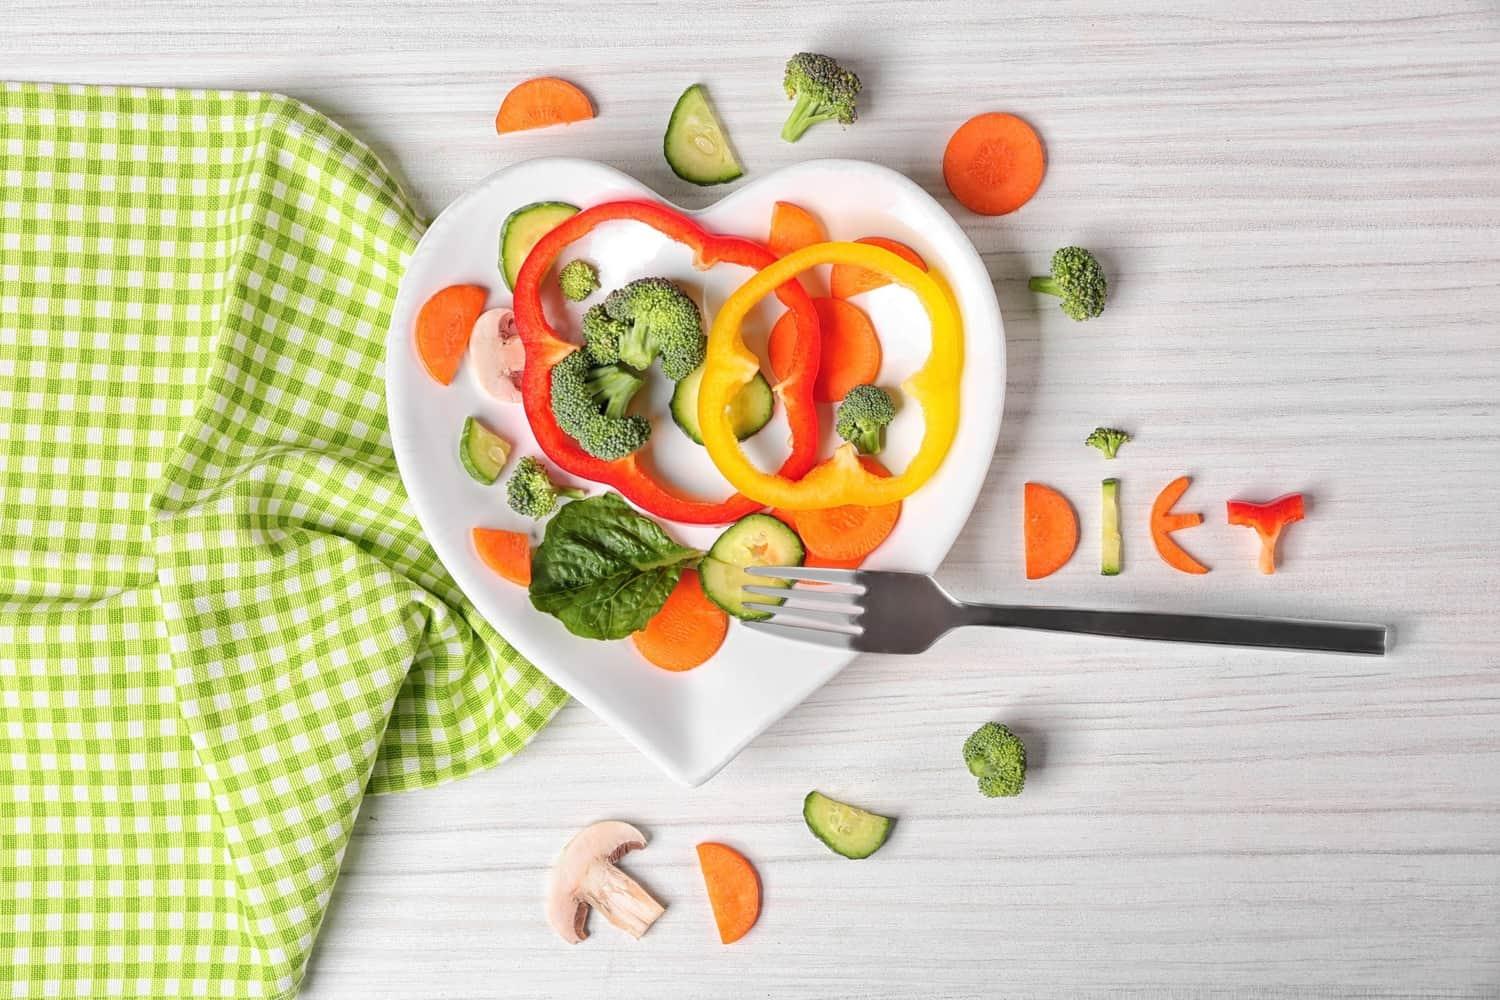 A plate of vegetables.